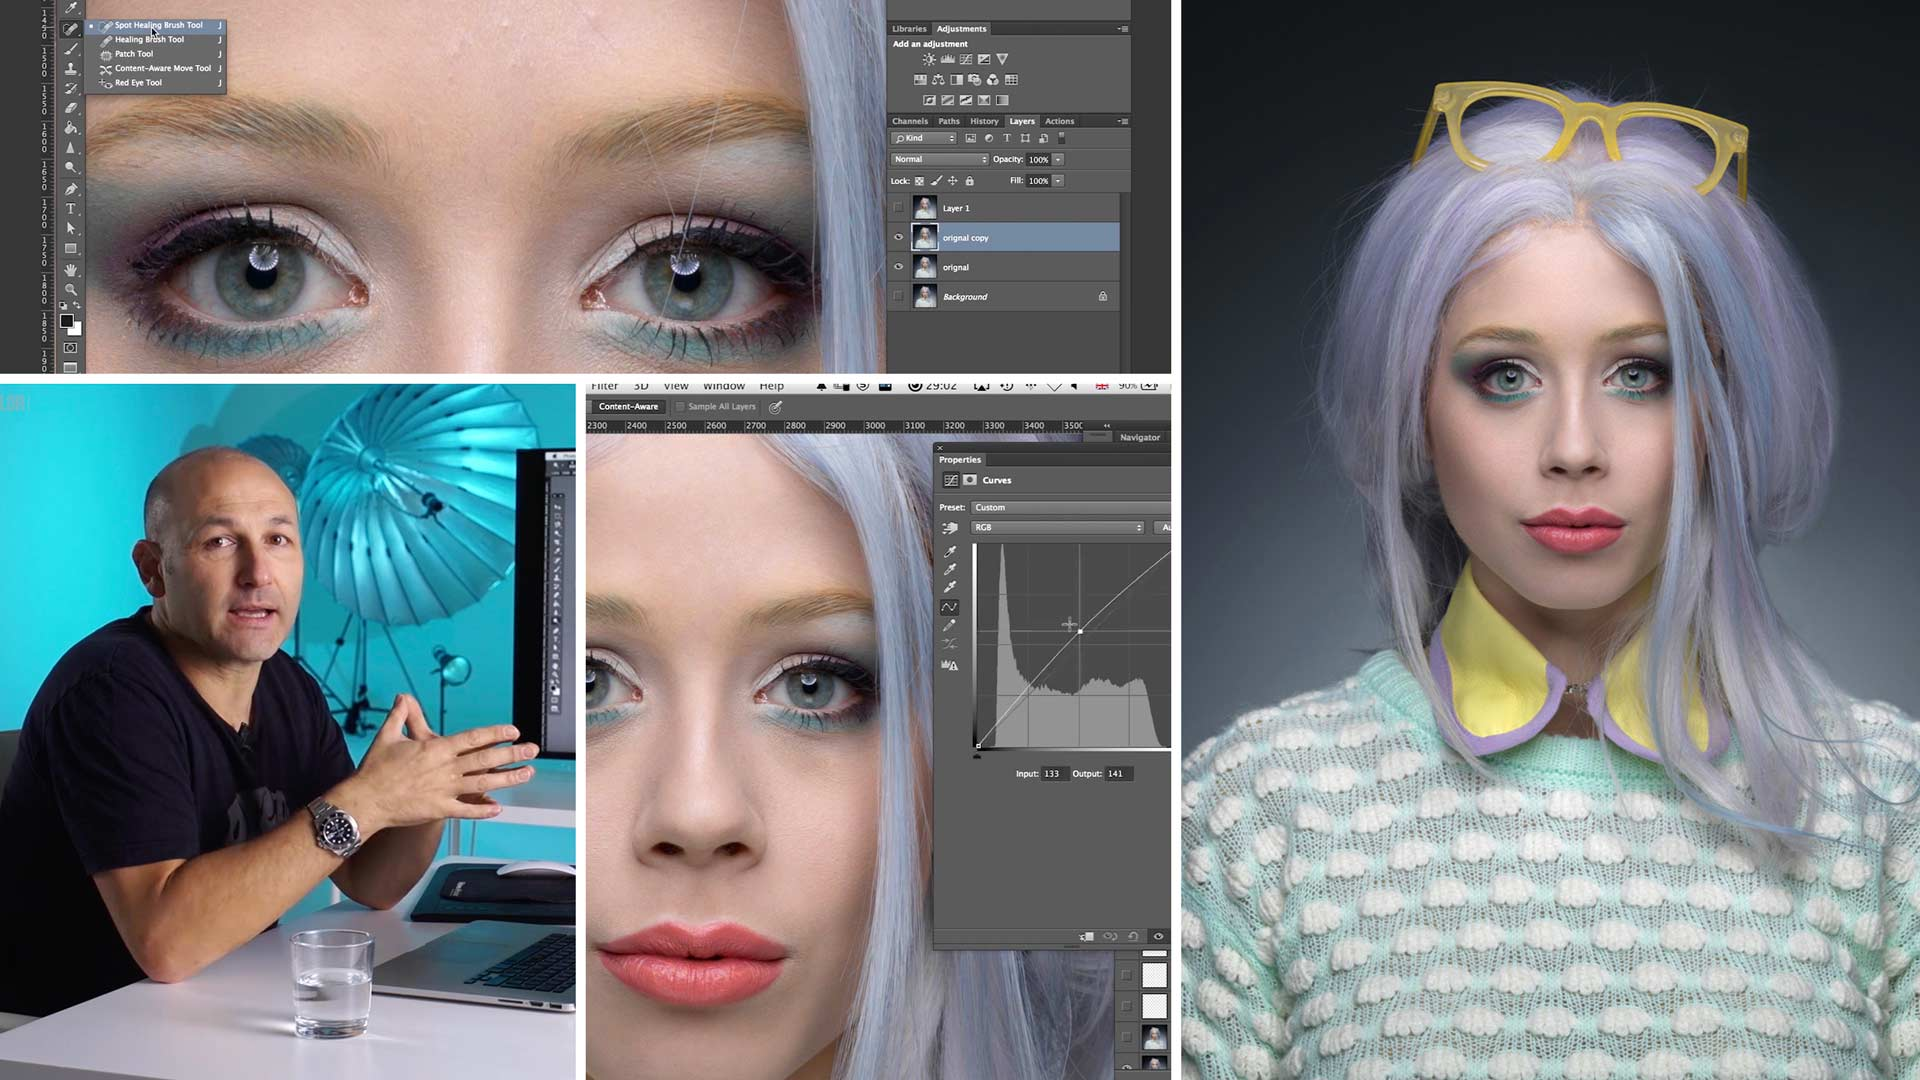 Practical demonstration on beauty retouch